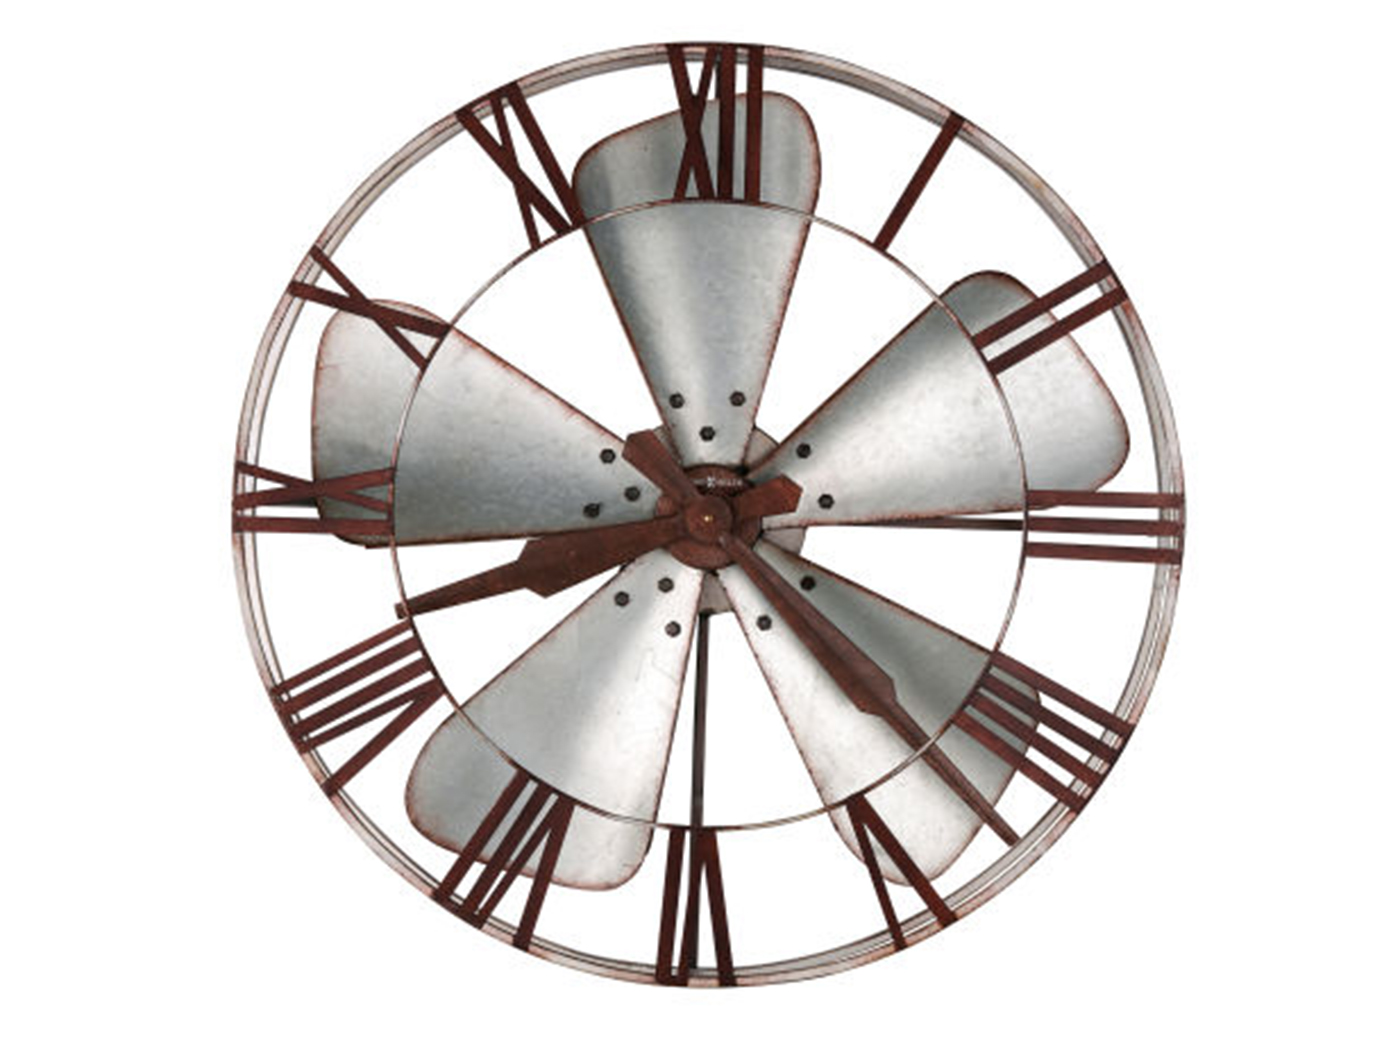 Howard Miller Silver Iron Fan Blades Wall Clock 31.5""